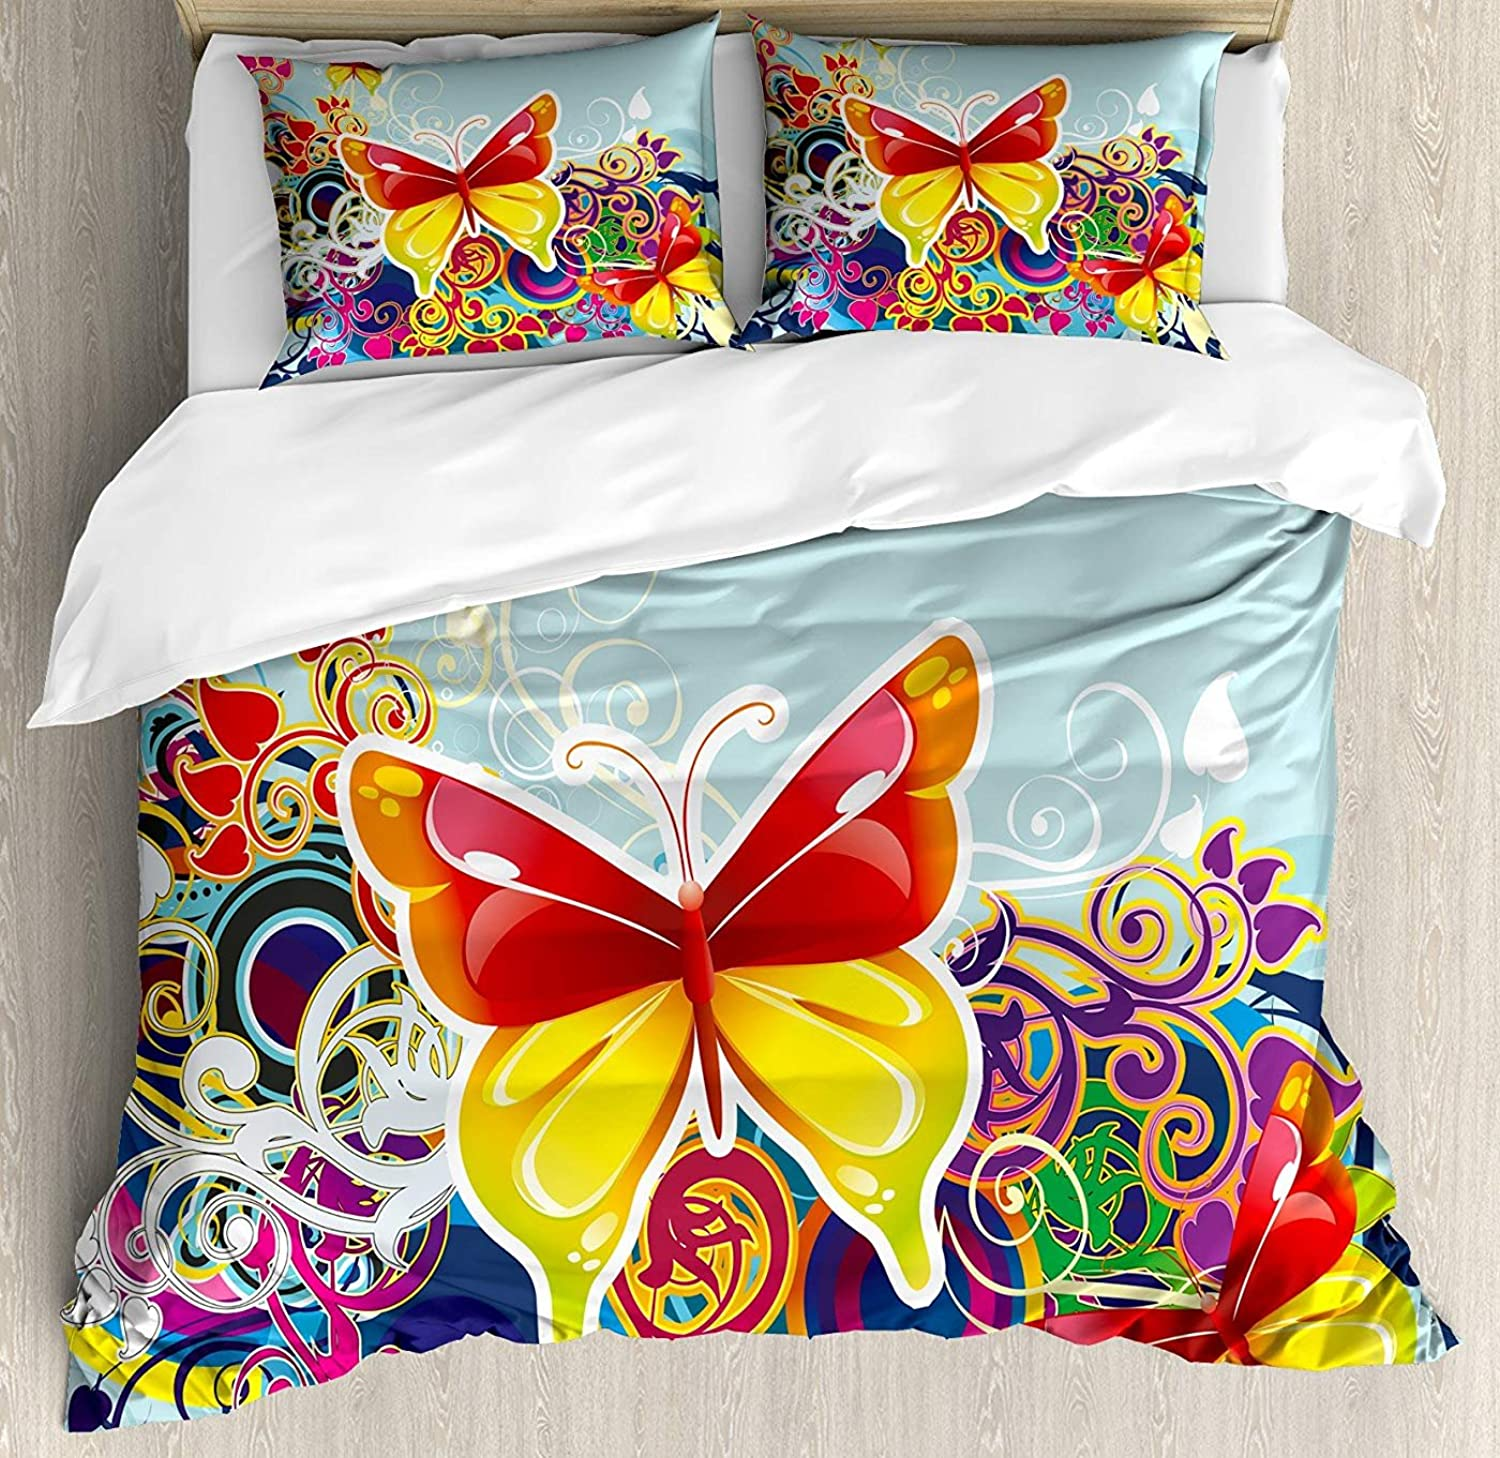 colorful Bedding Set King Size, Butterflies and Floral Ornamanets Fantasy Design colorful Vibrant Wings Artwork,Comforter Cover Sets for All Season, Multicolor